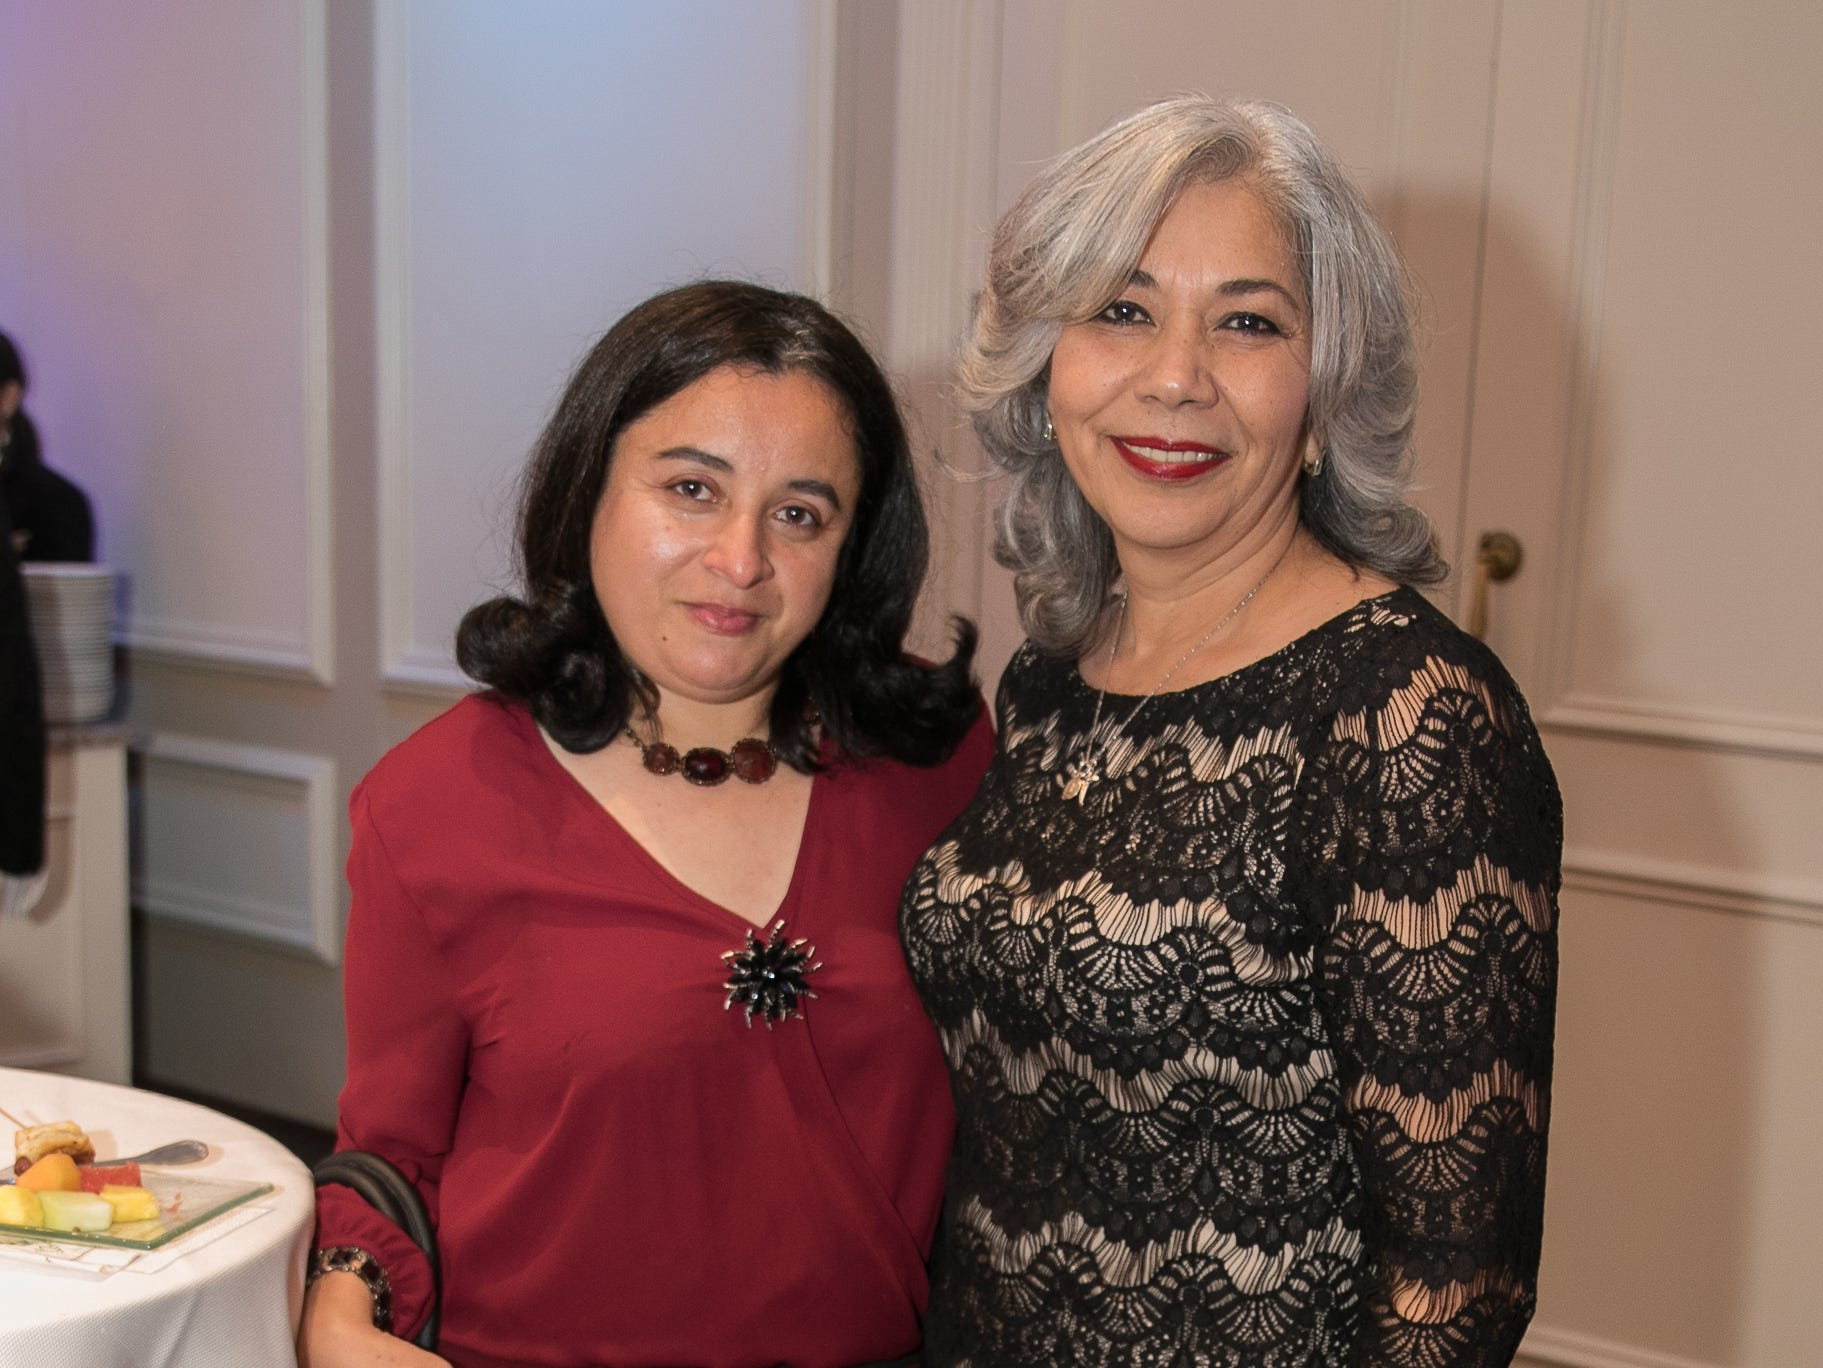 Jessie Figueroa, Edna Salcedo. Bergen Family Center celebrated 120 years of service with dinner and a silent auction at Th e Rockleigh Country Club.11/1/2018